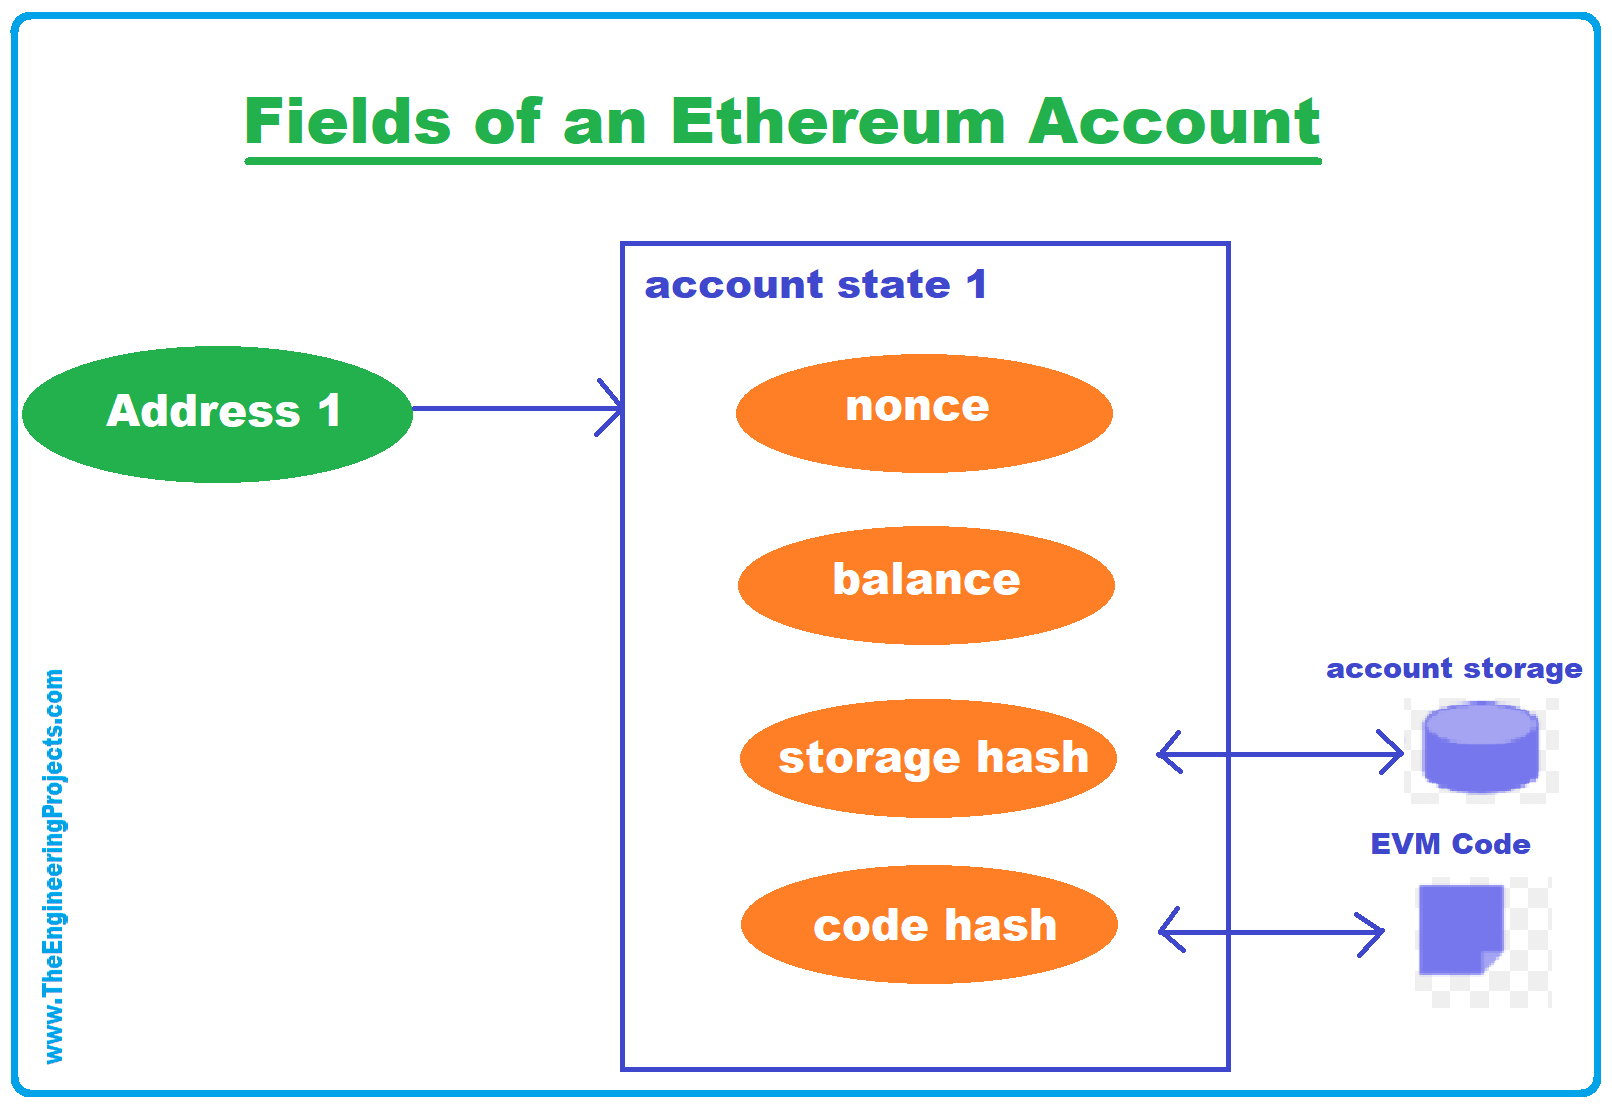 Ethereum Accounts, ethereum system, ethereum blockchain, Types of Accounts, Externally Owned Accounts, Contract Accounts, Fields of an Ethereum Account